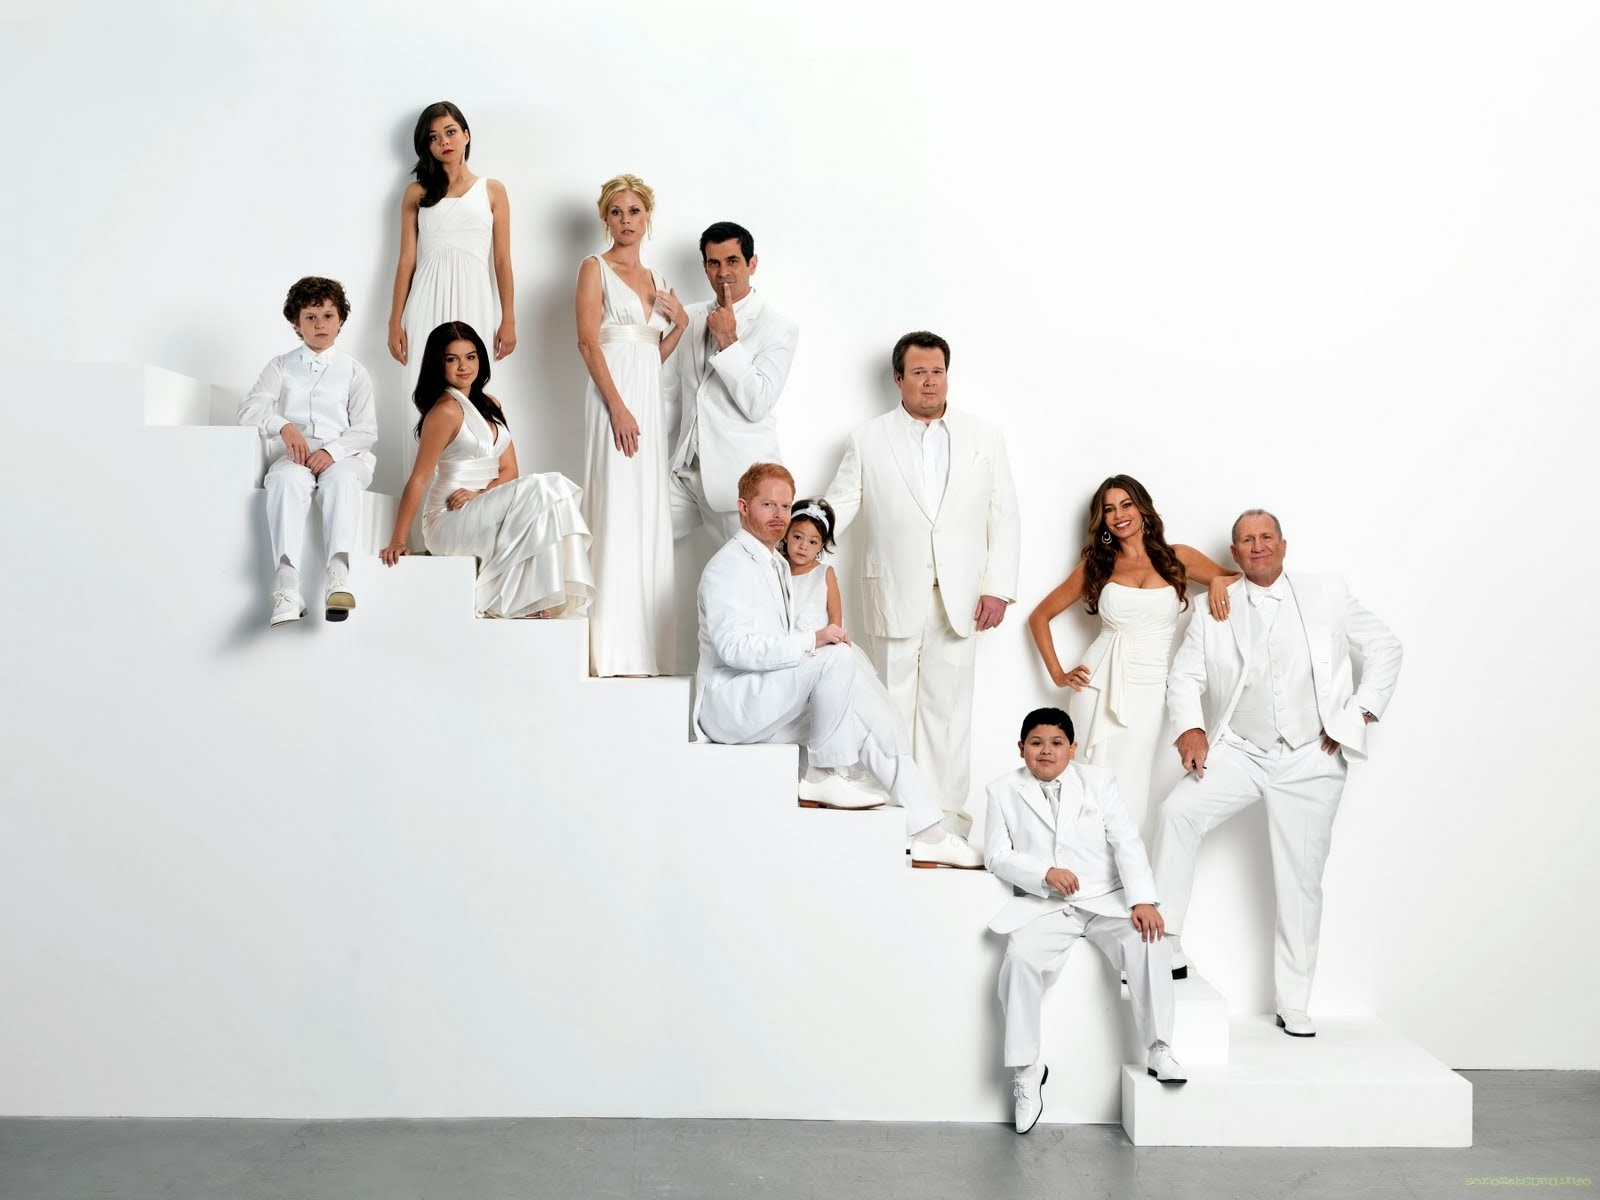 modern family images wallpaper - photo #24